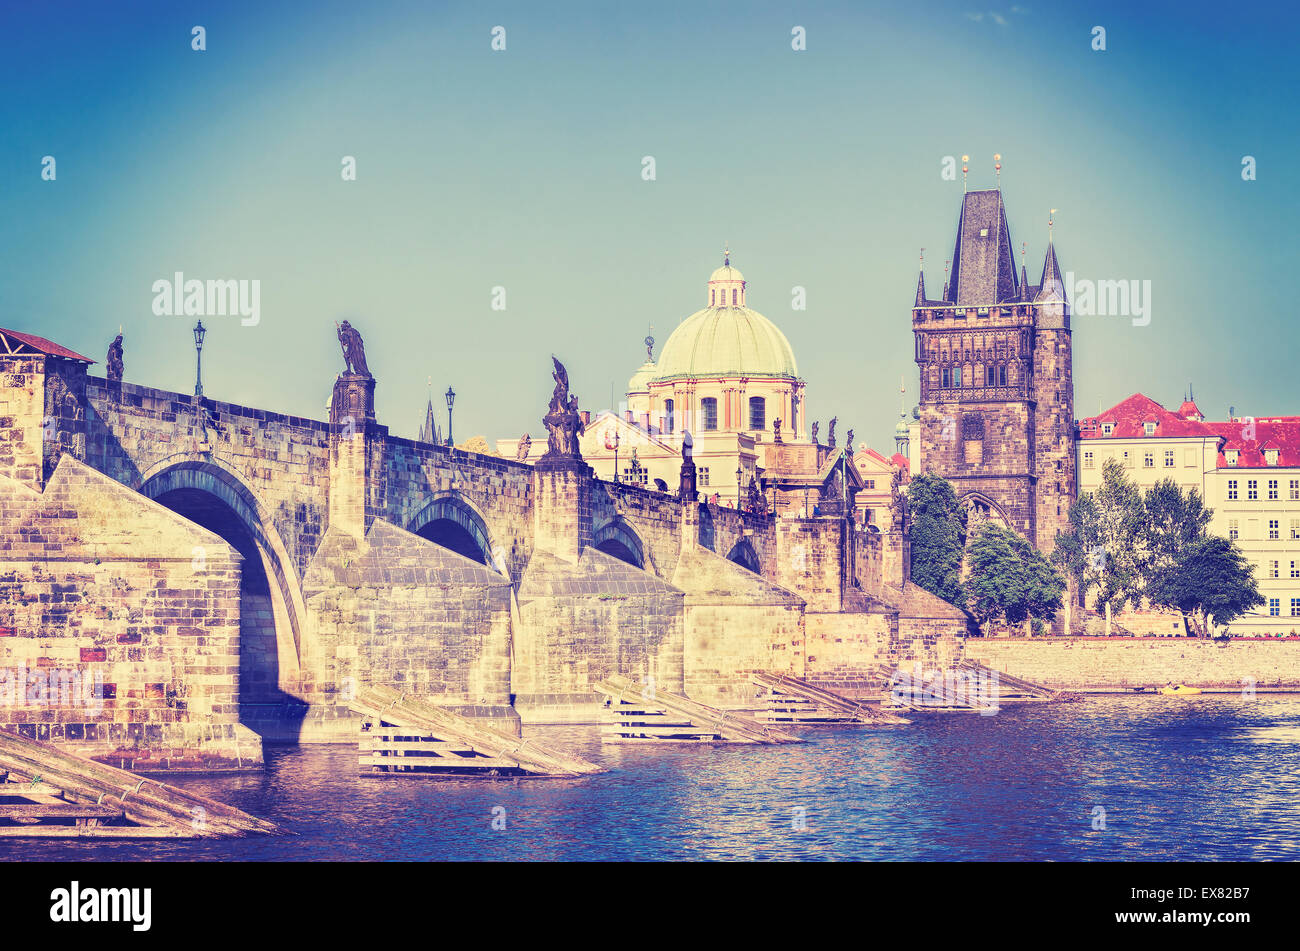 Instagram Retro photo stylisée de Prague, le pont Charles et la rivière Vltava. Photo Stock